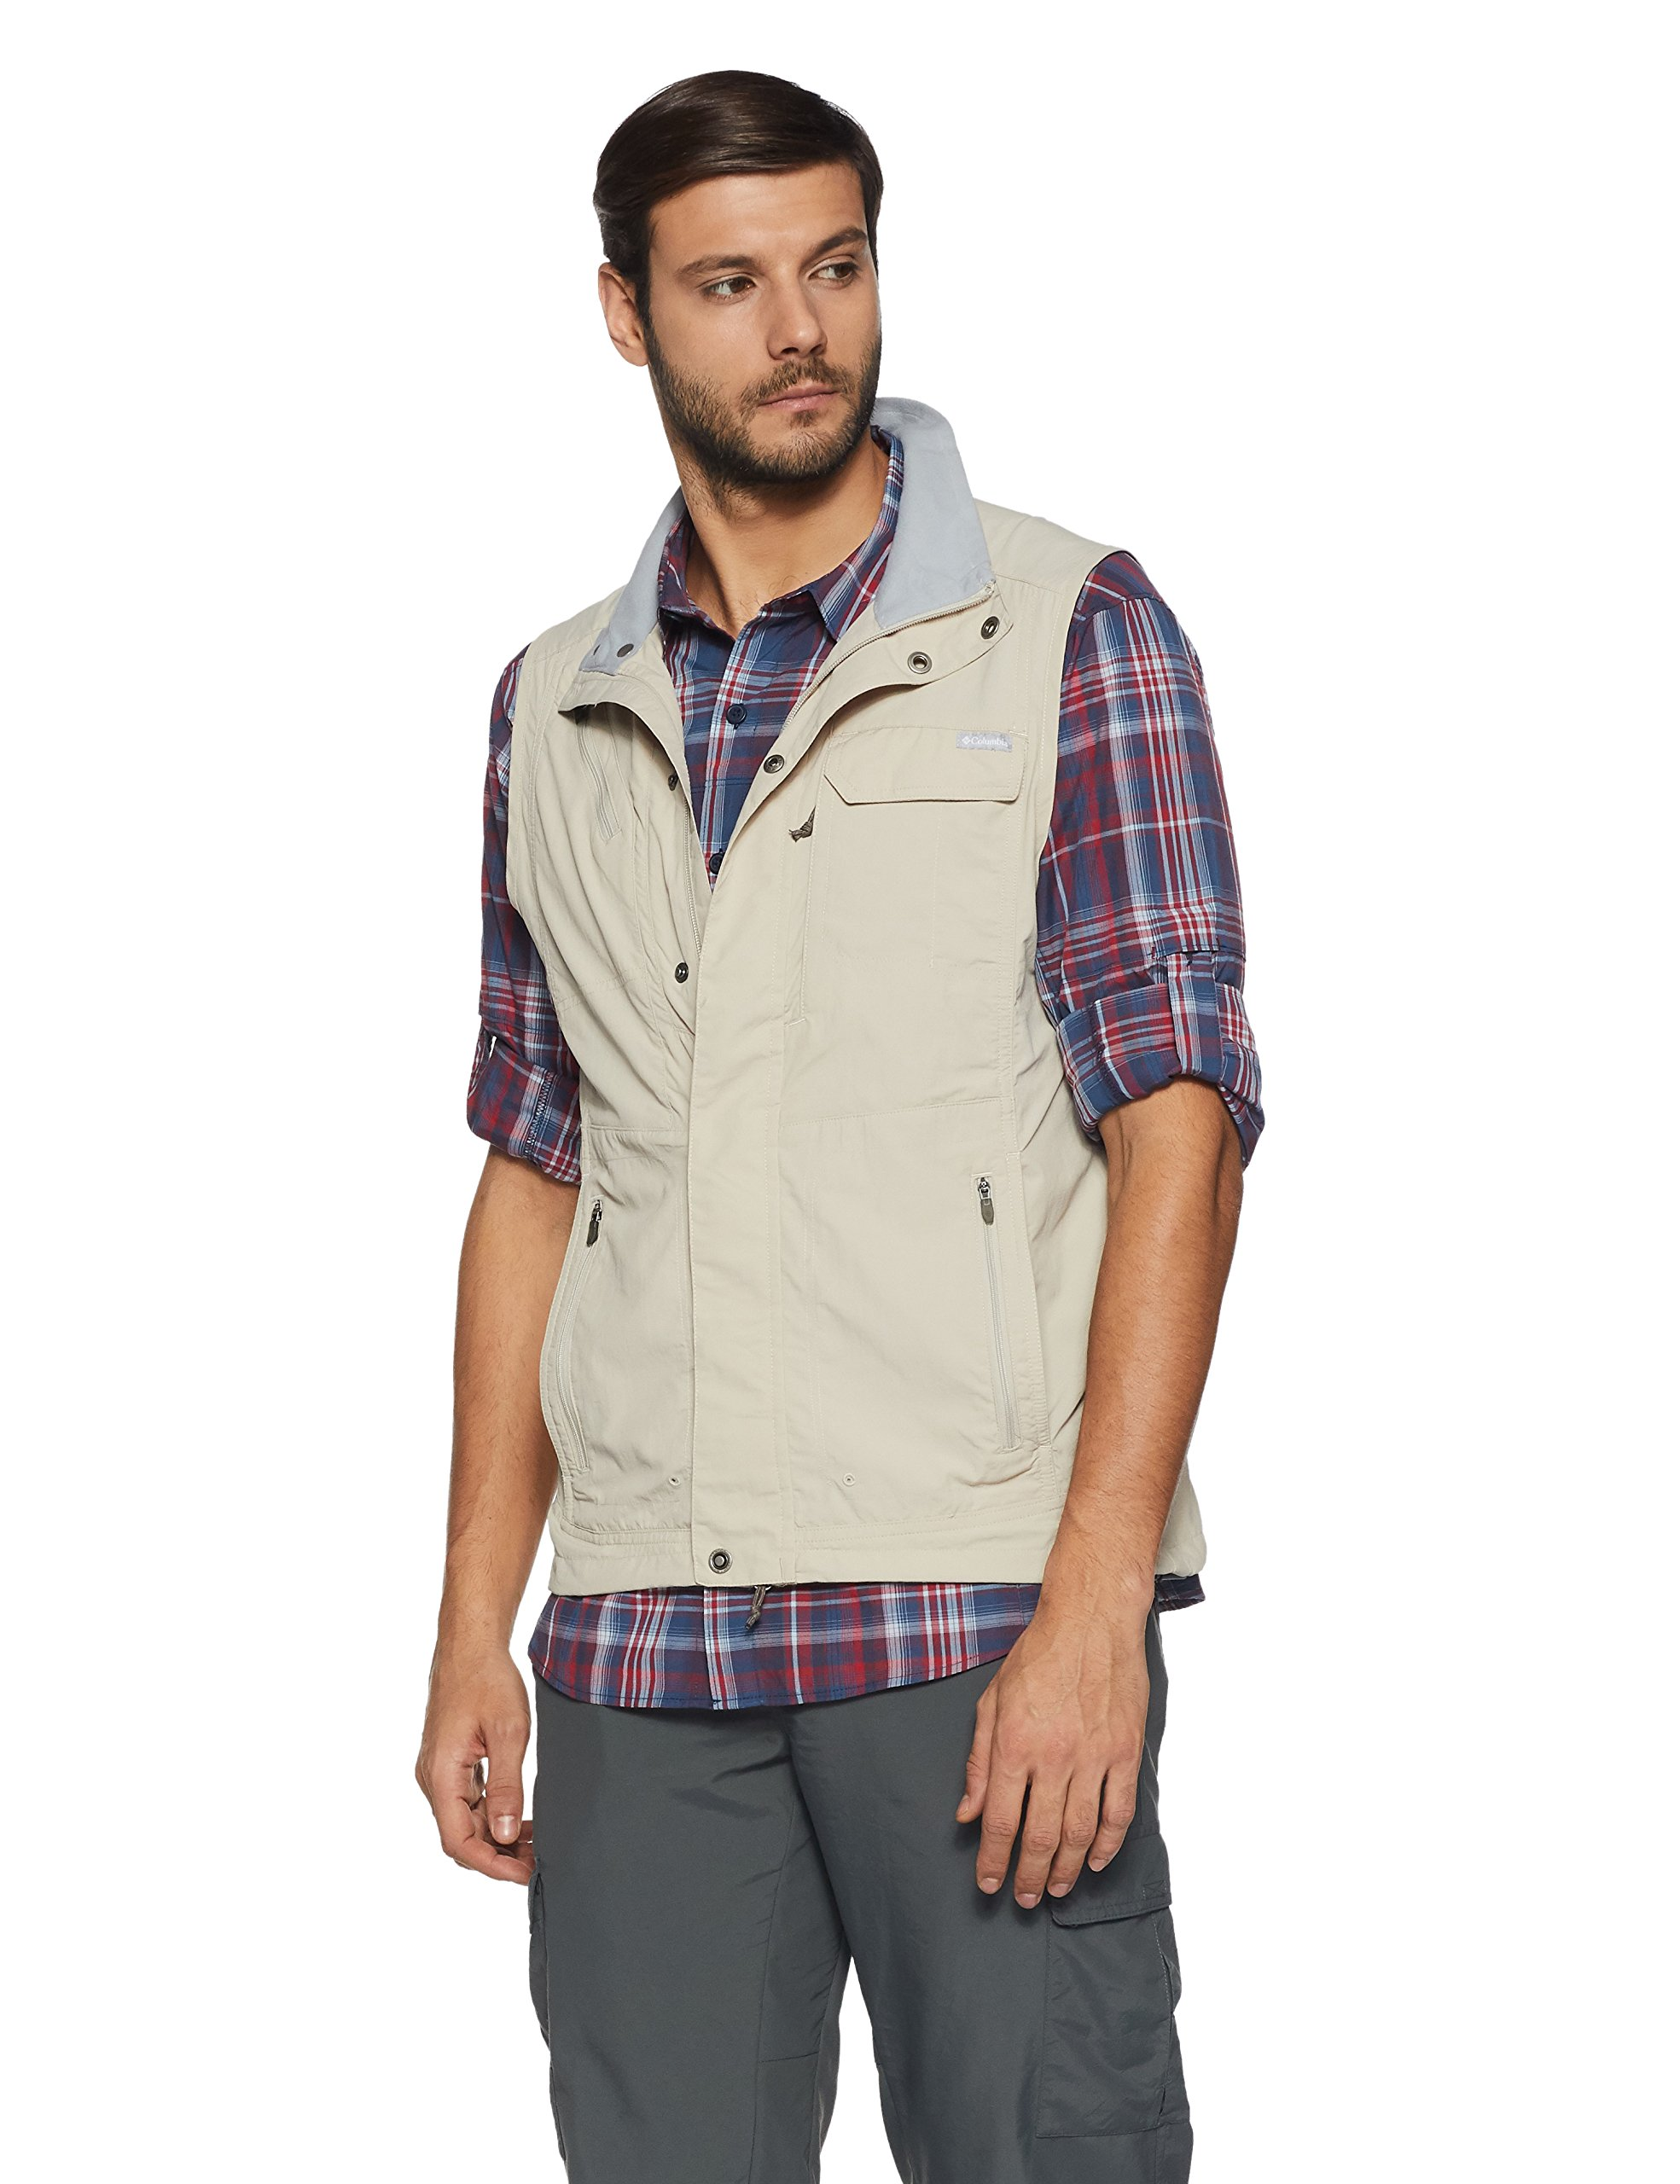 Columbia Silver Ridge Vest (Small, Fossil) by Columbia